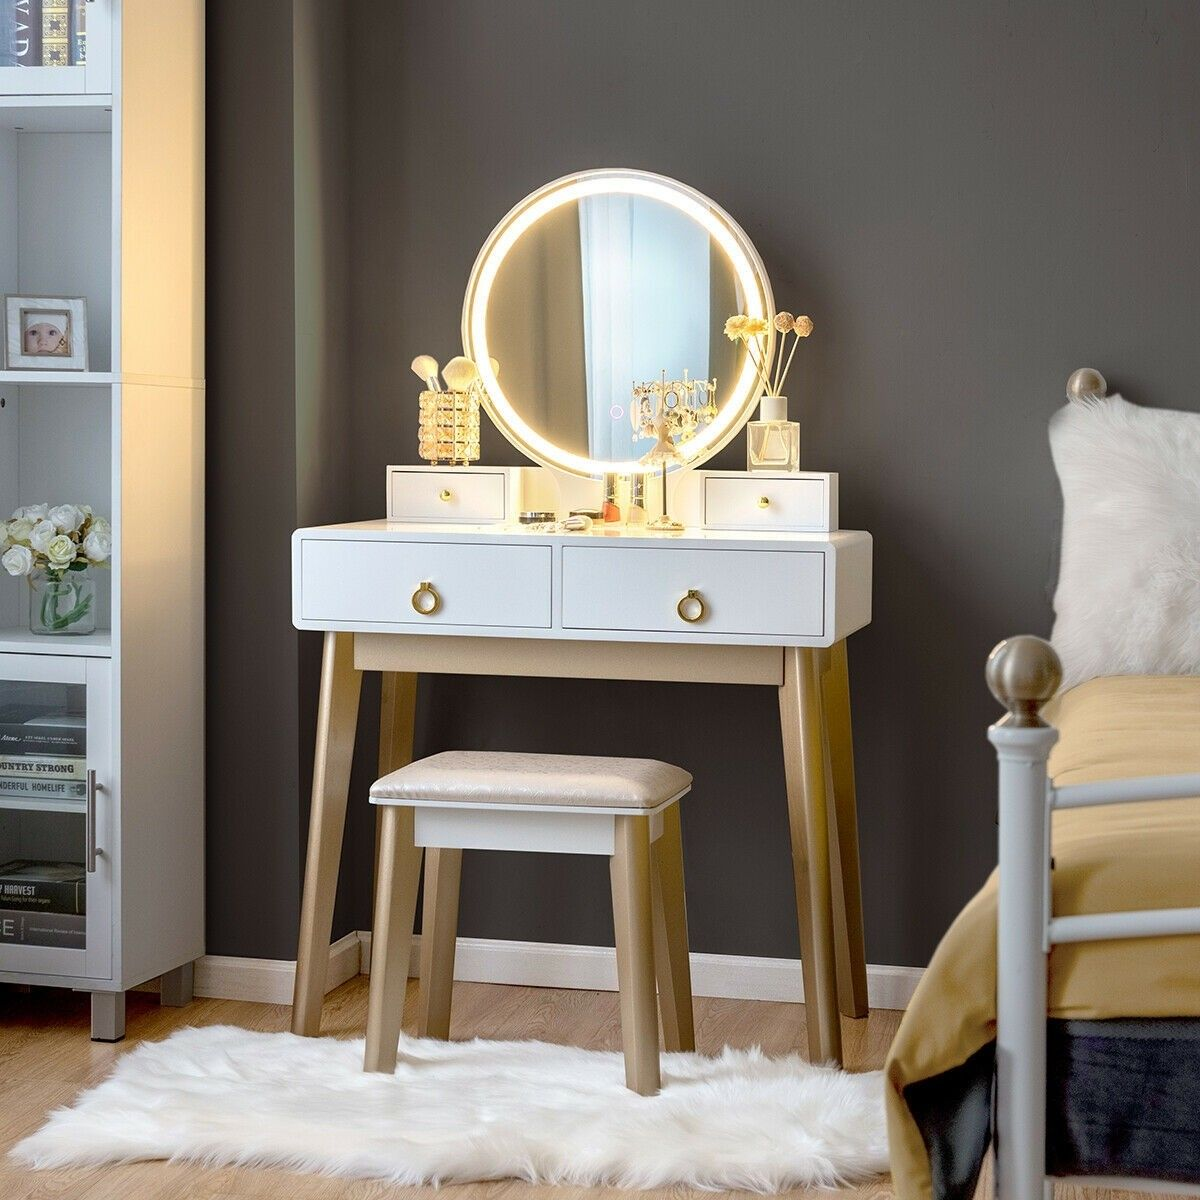 Set 3 Makeup Vanity Table Color Lighting Jewelry Divider Dressing Table 179 95 Free Shipping It S A Modern Dr Bedroom Vanity Set Vanity Table Set Vanity Set